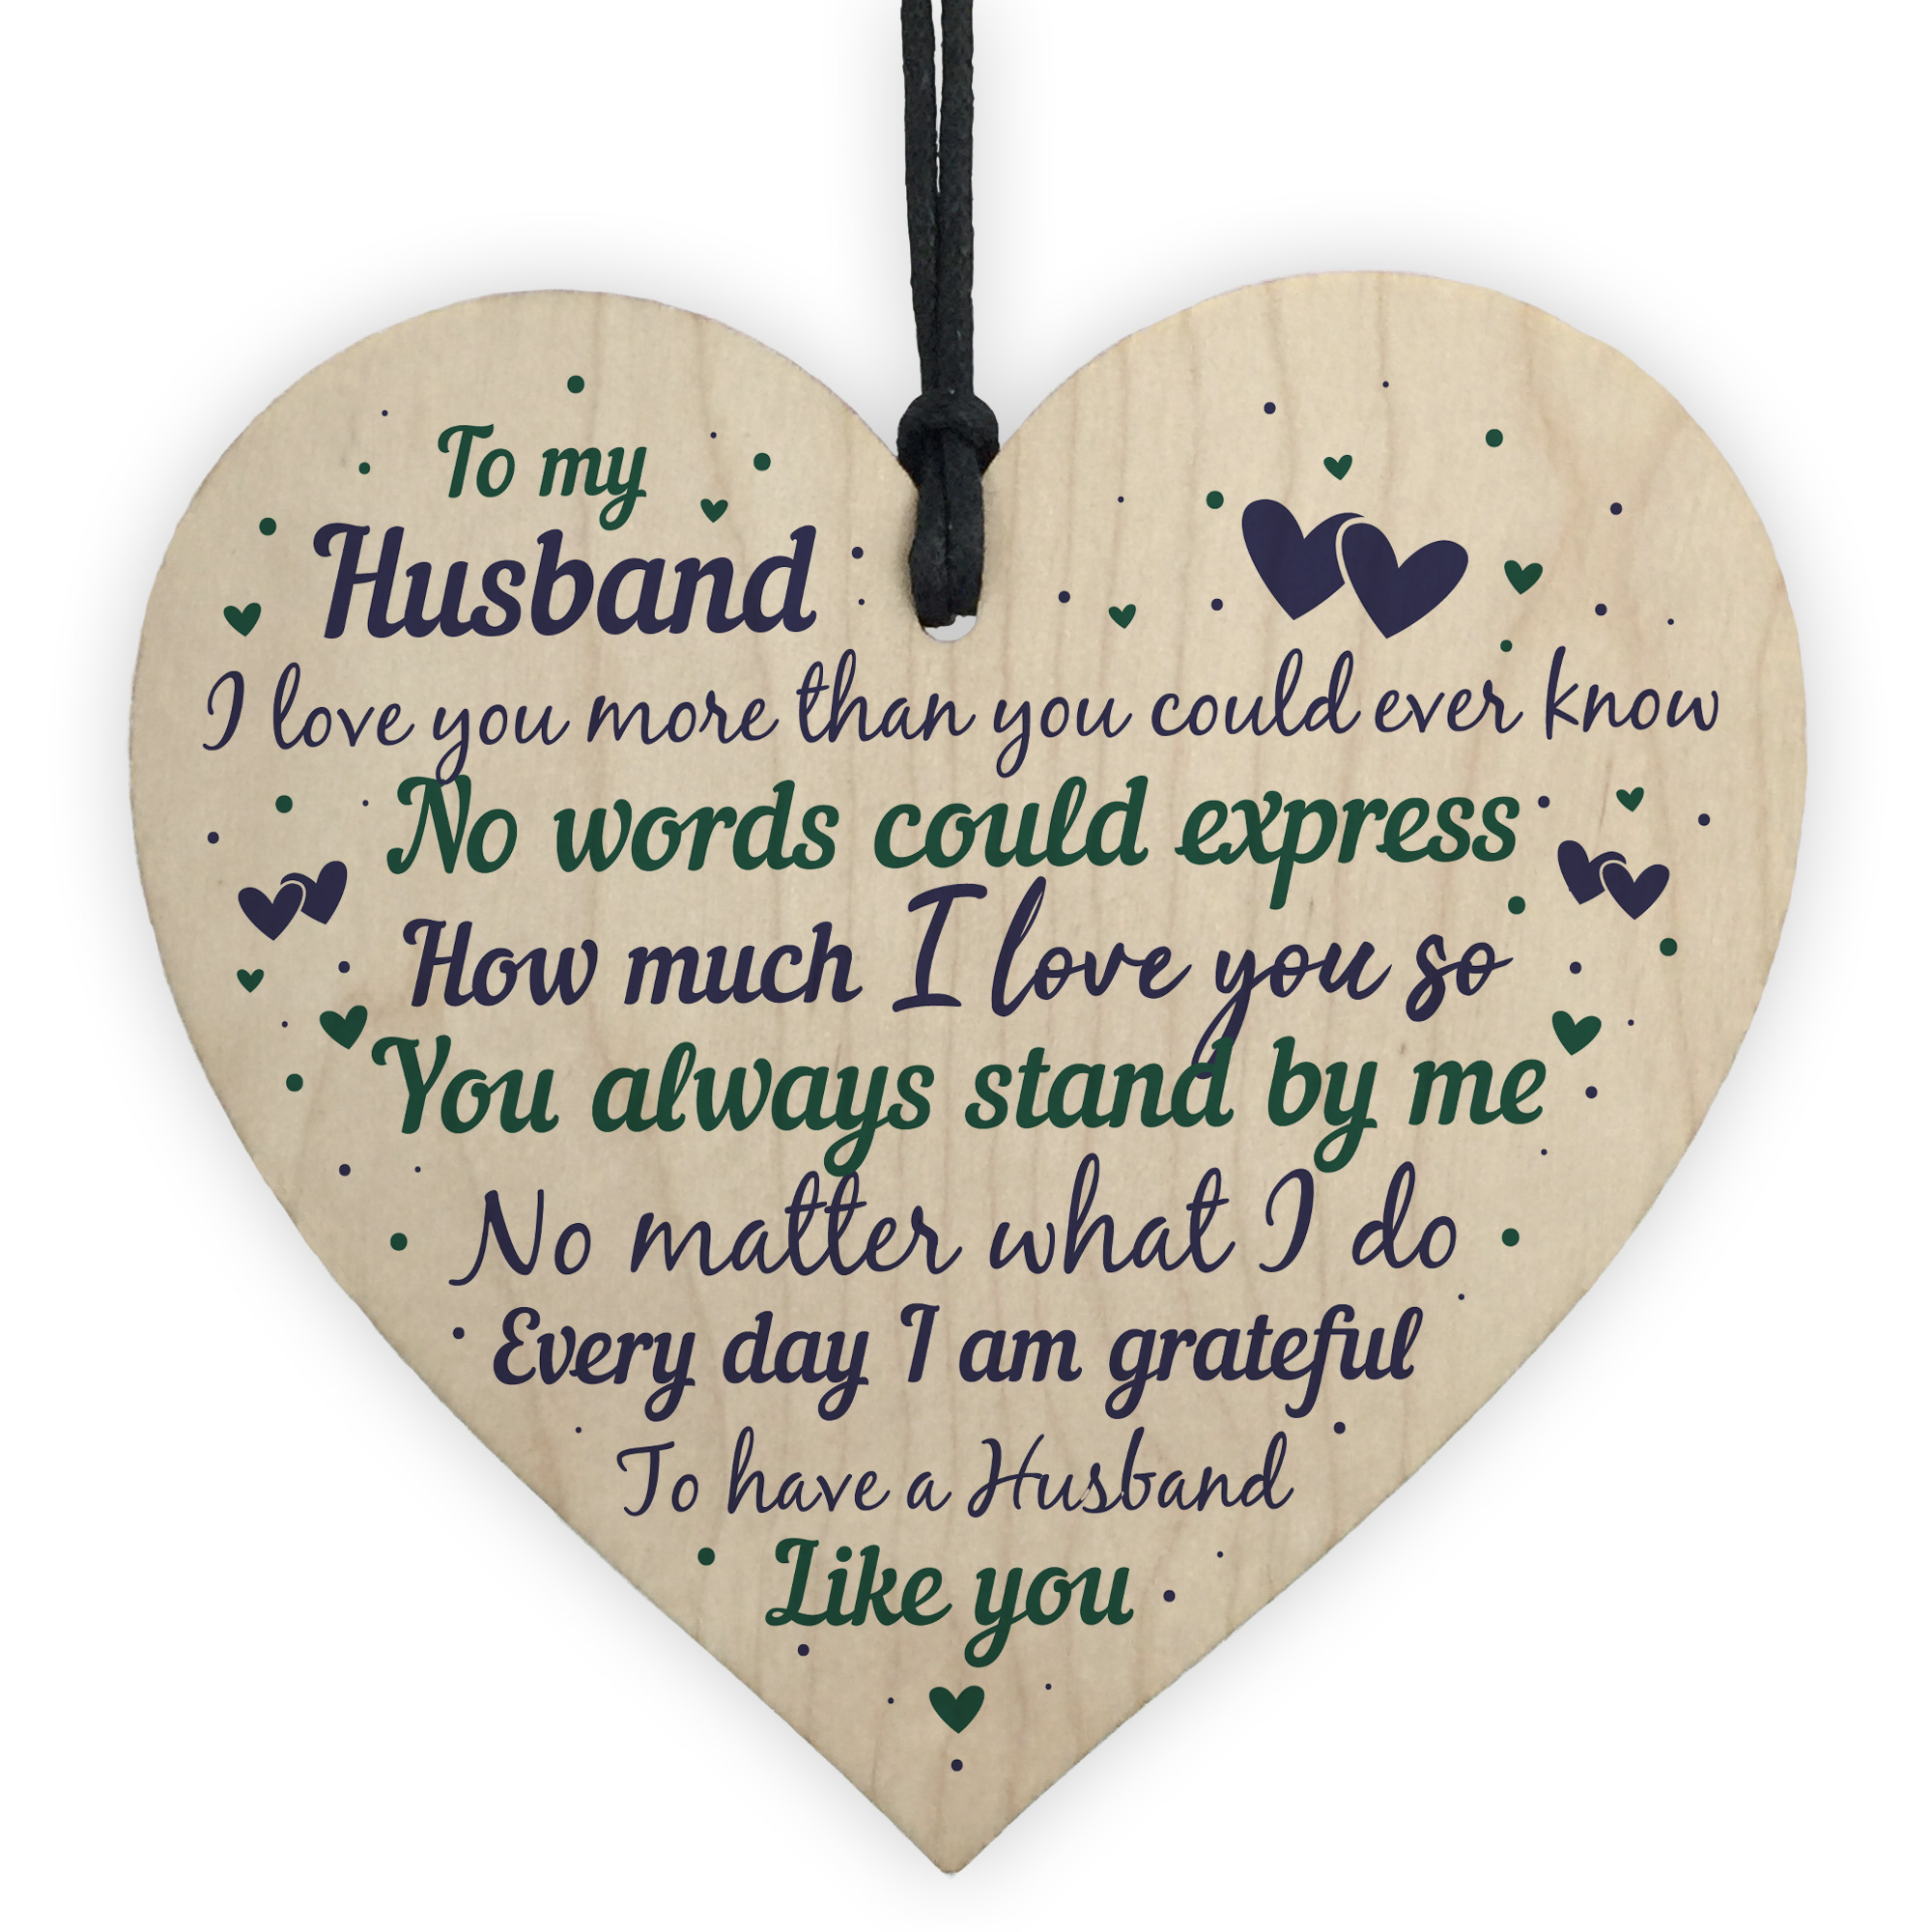 Details about Husband Anniversary Gift From Wife Handmade Wooden Heart Poem  Christmas Gifts